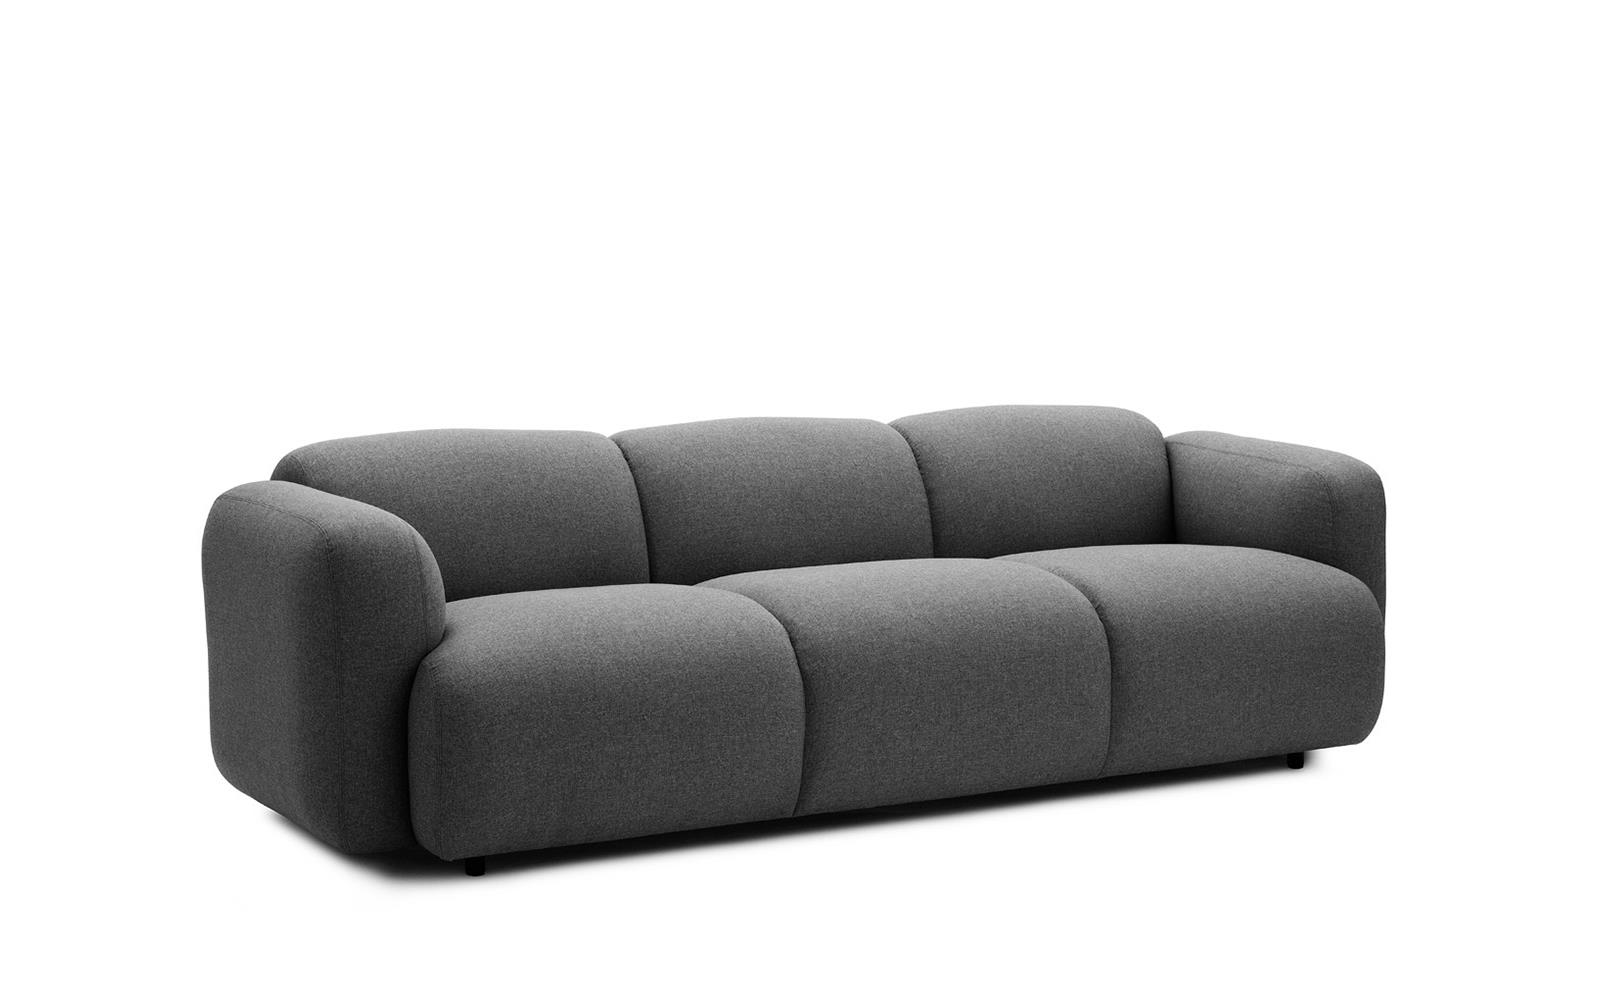 Swell Sofa 3 Seater2